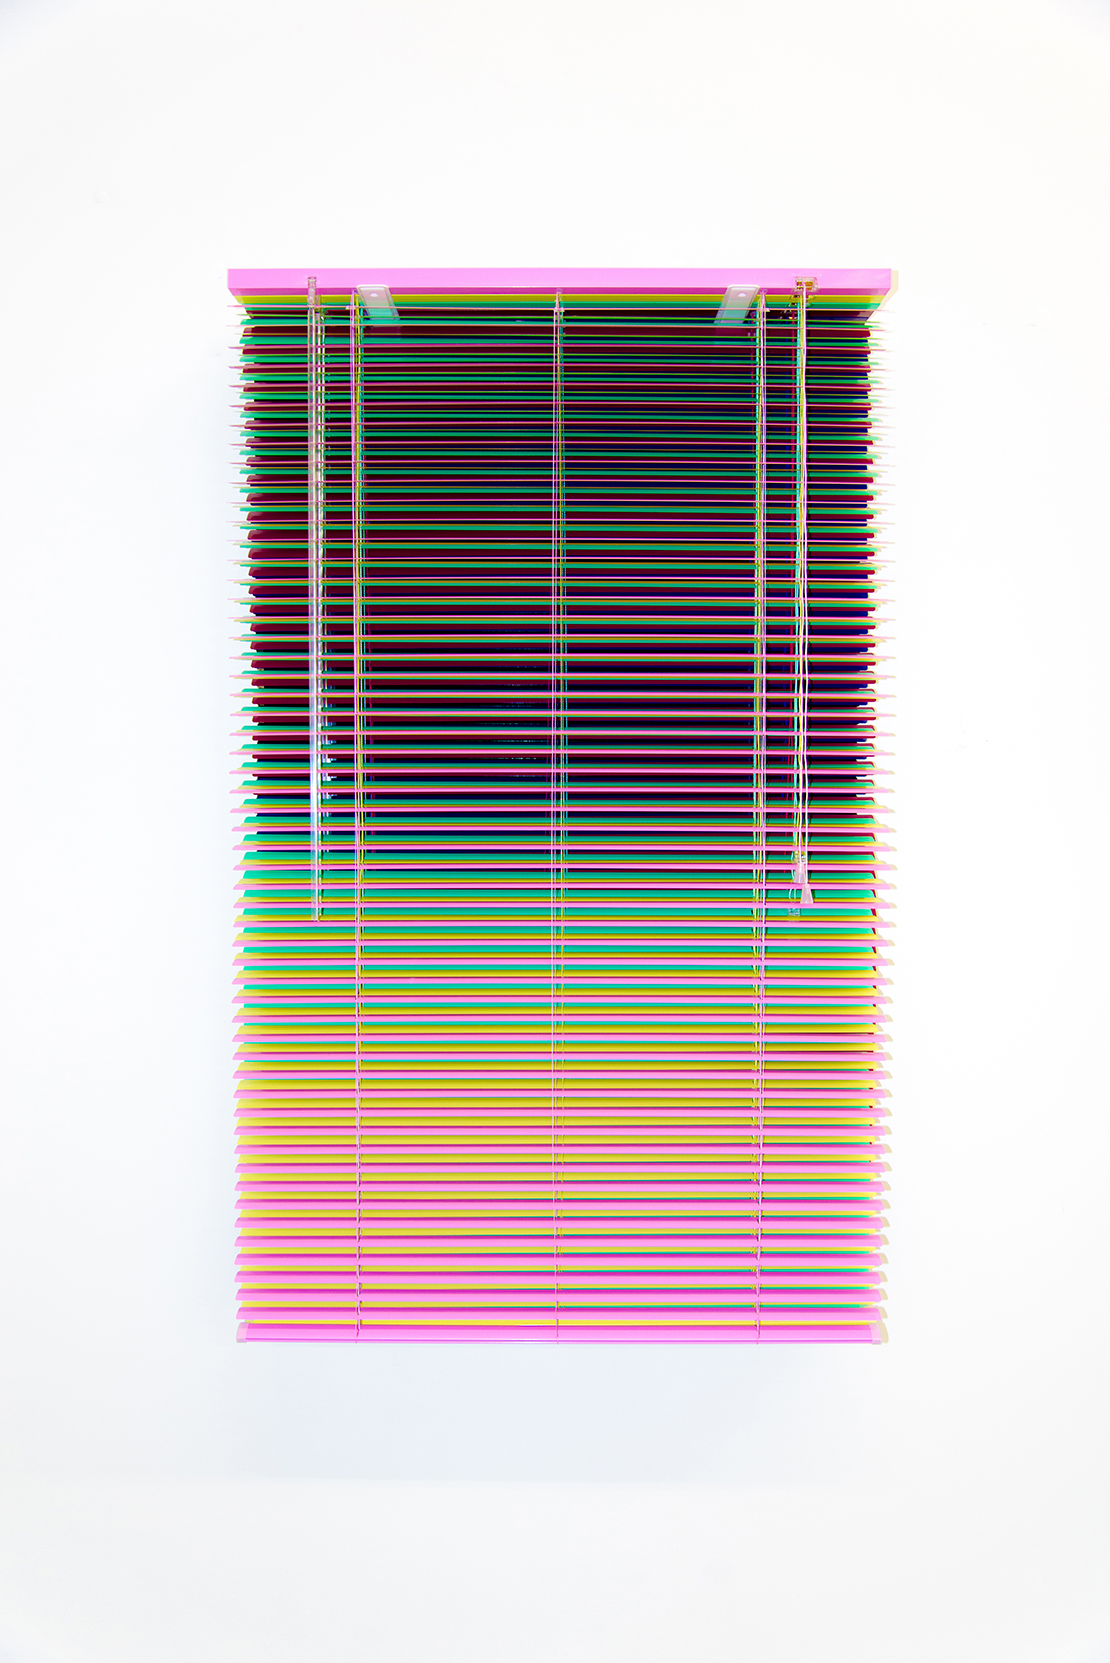 luxartcontemporary_salimuller_the-moment-in-a-window-of-time_stacked-venetian-blinds_2016